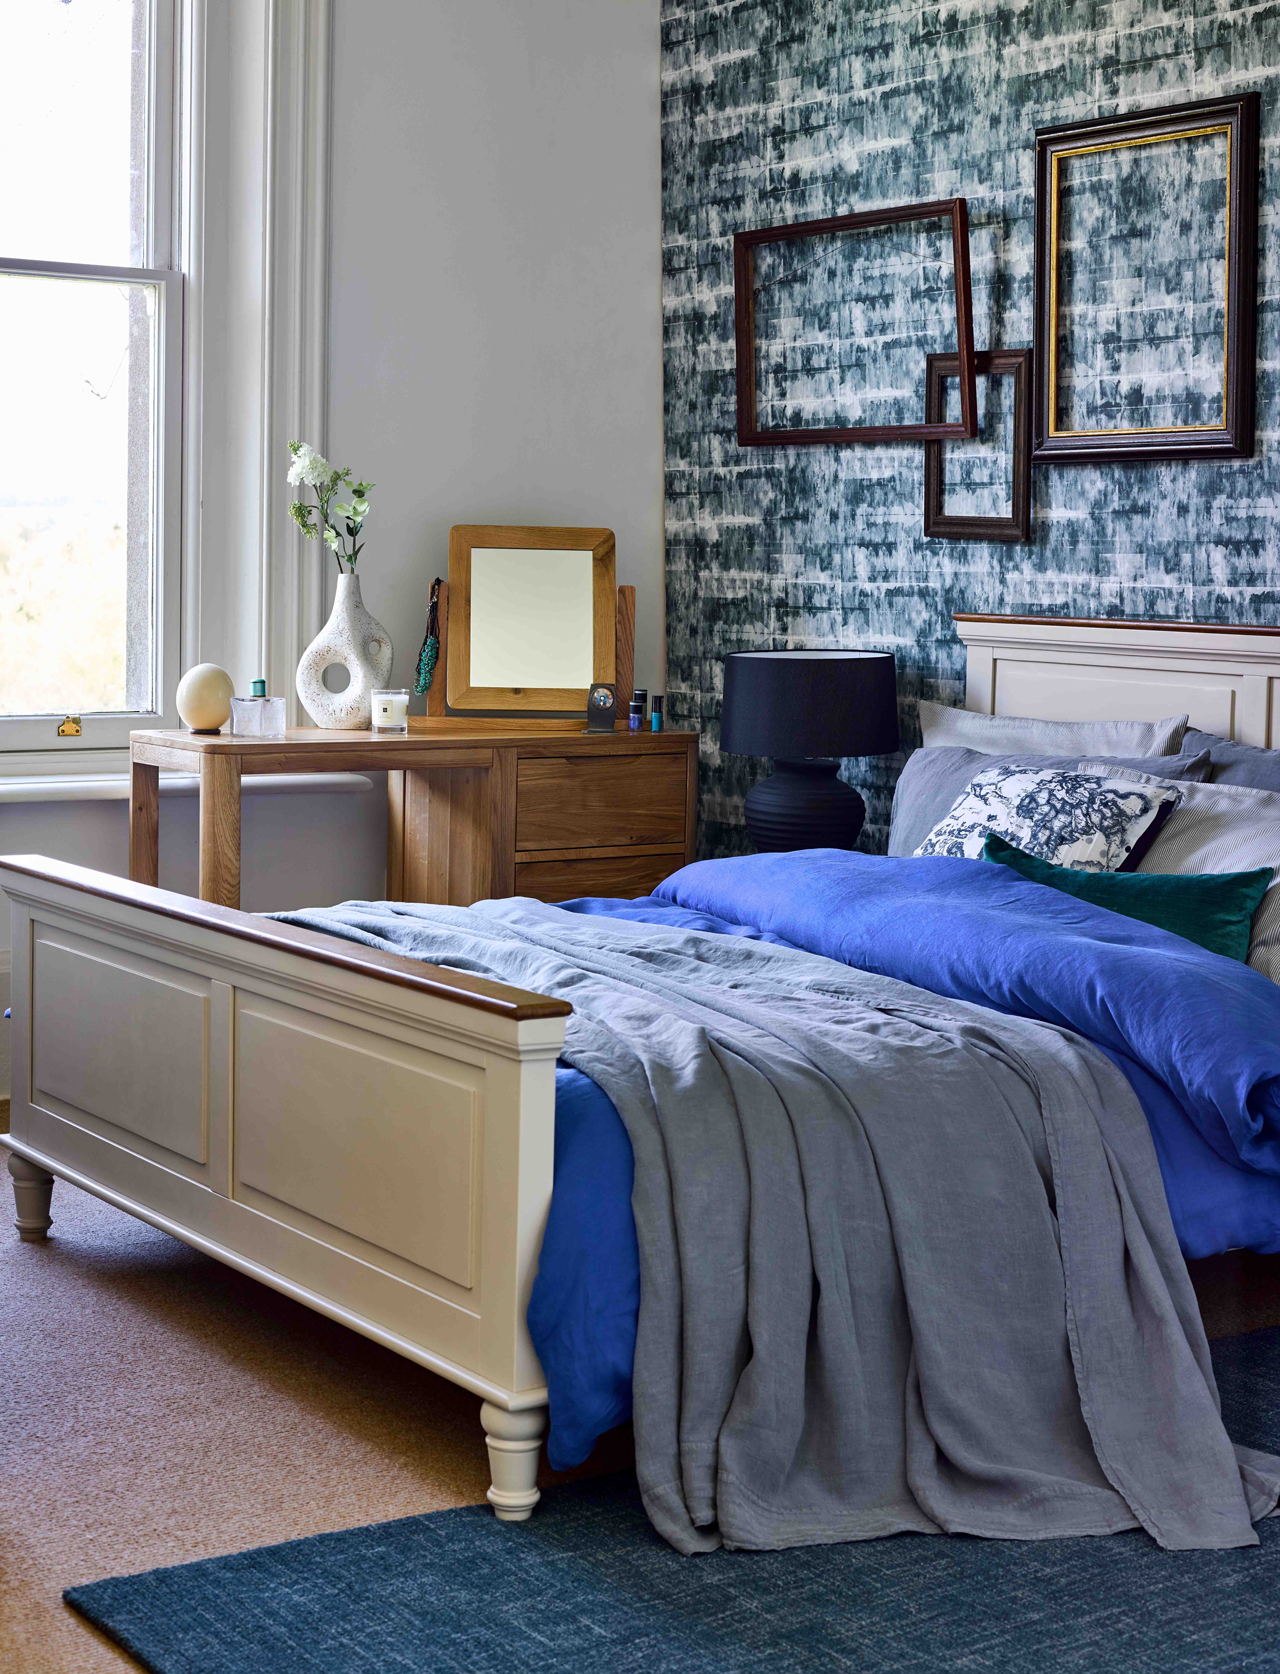 statement wallpaper and blue grey bedroom decor